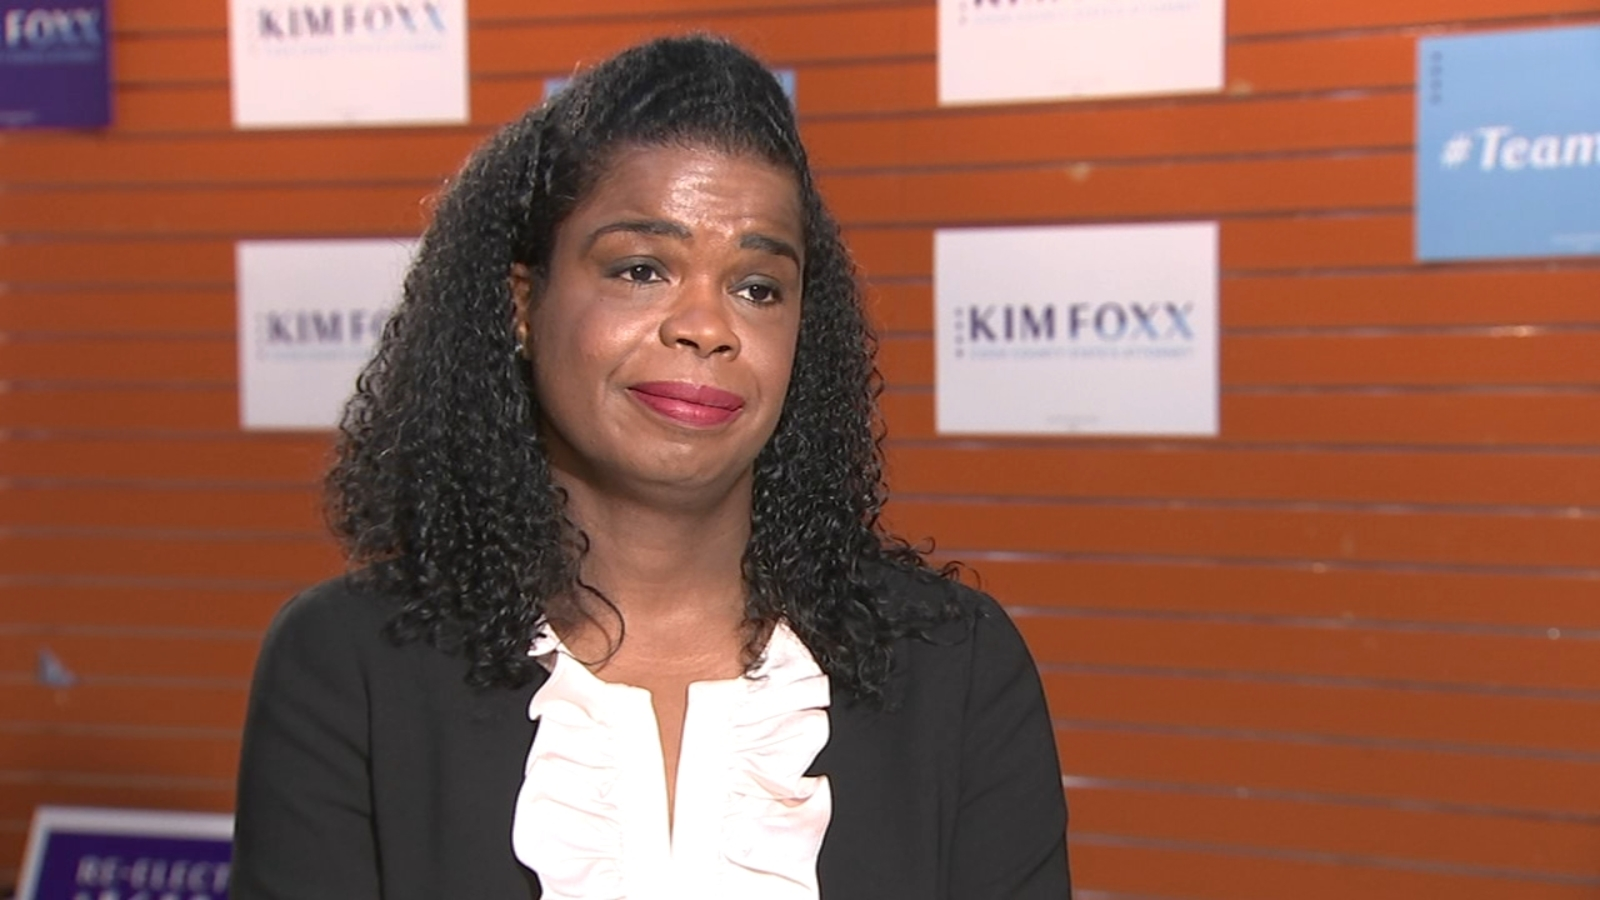 Kim Foxx says Jussie Smollett case shouldn't define her record as Cook County State's Attorney